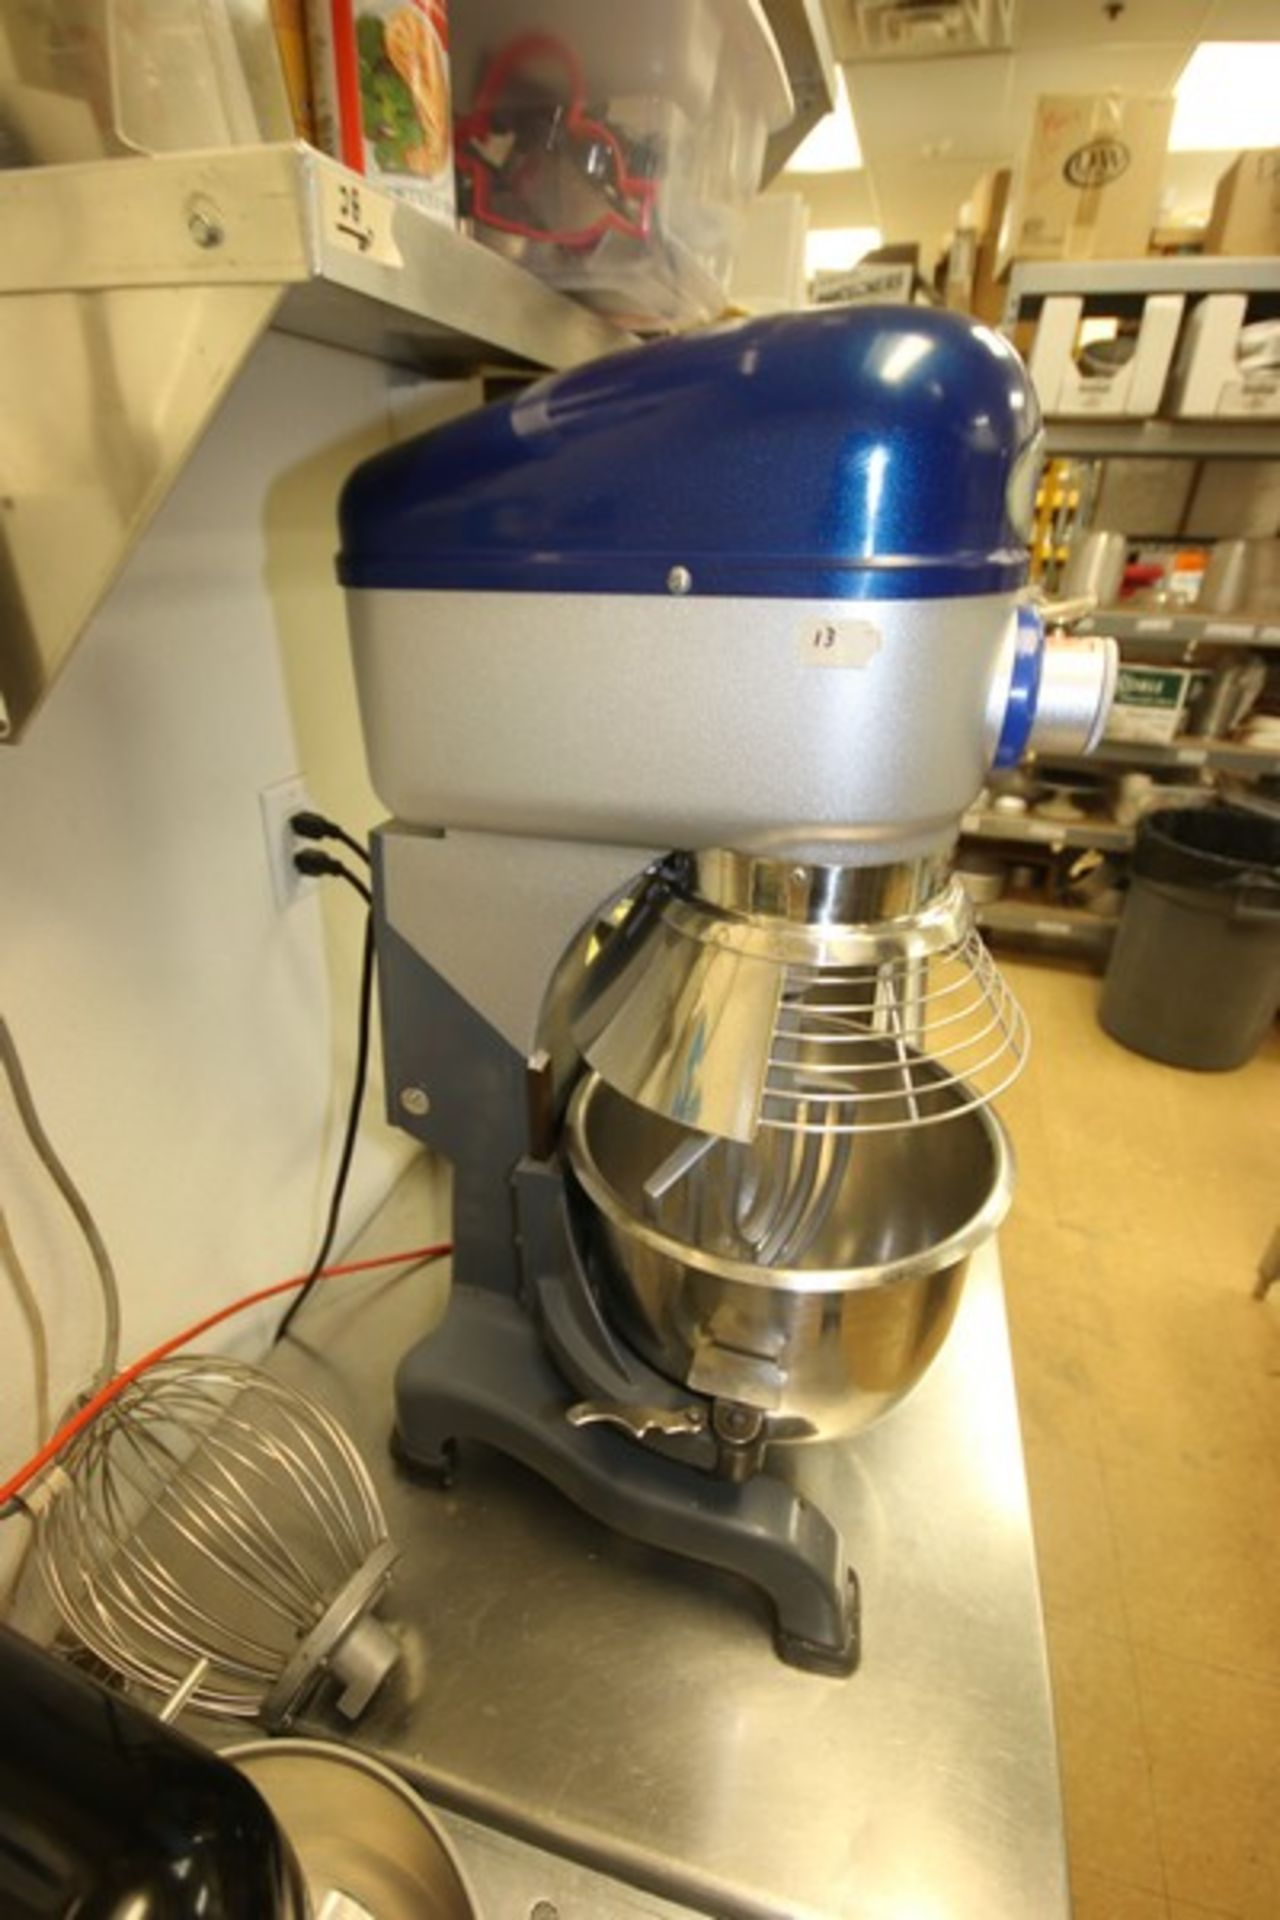 Vollrath Mixer, M/N MIX1020, S/N B42-00181983-0210, with 1/2 hp Motor, 110 Volts, 1 Phase, with S/ - Image 6 of 9